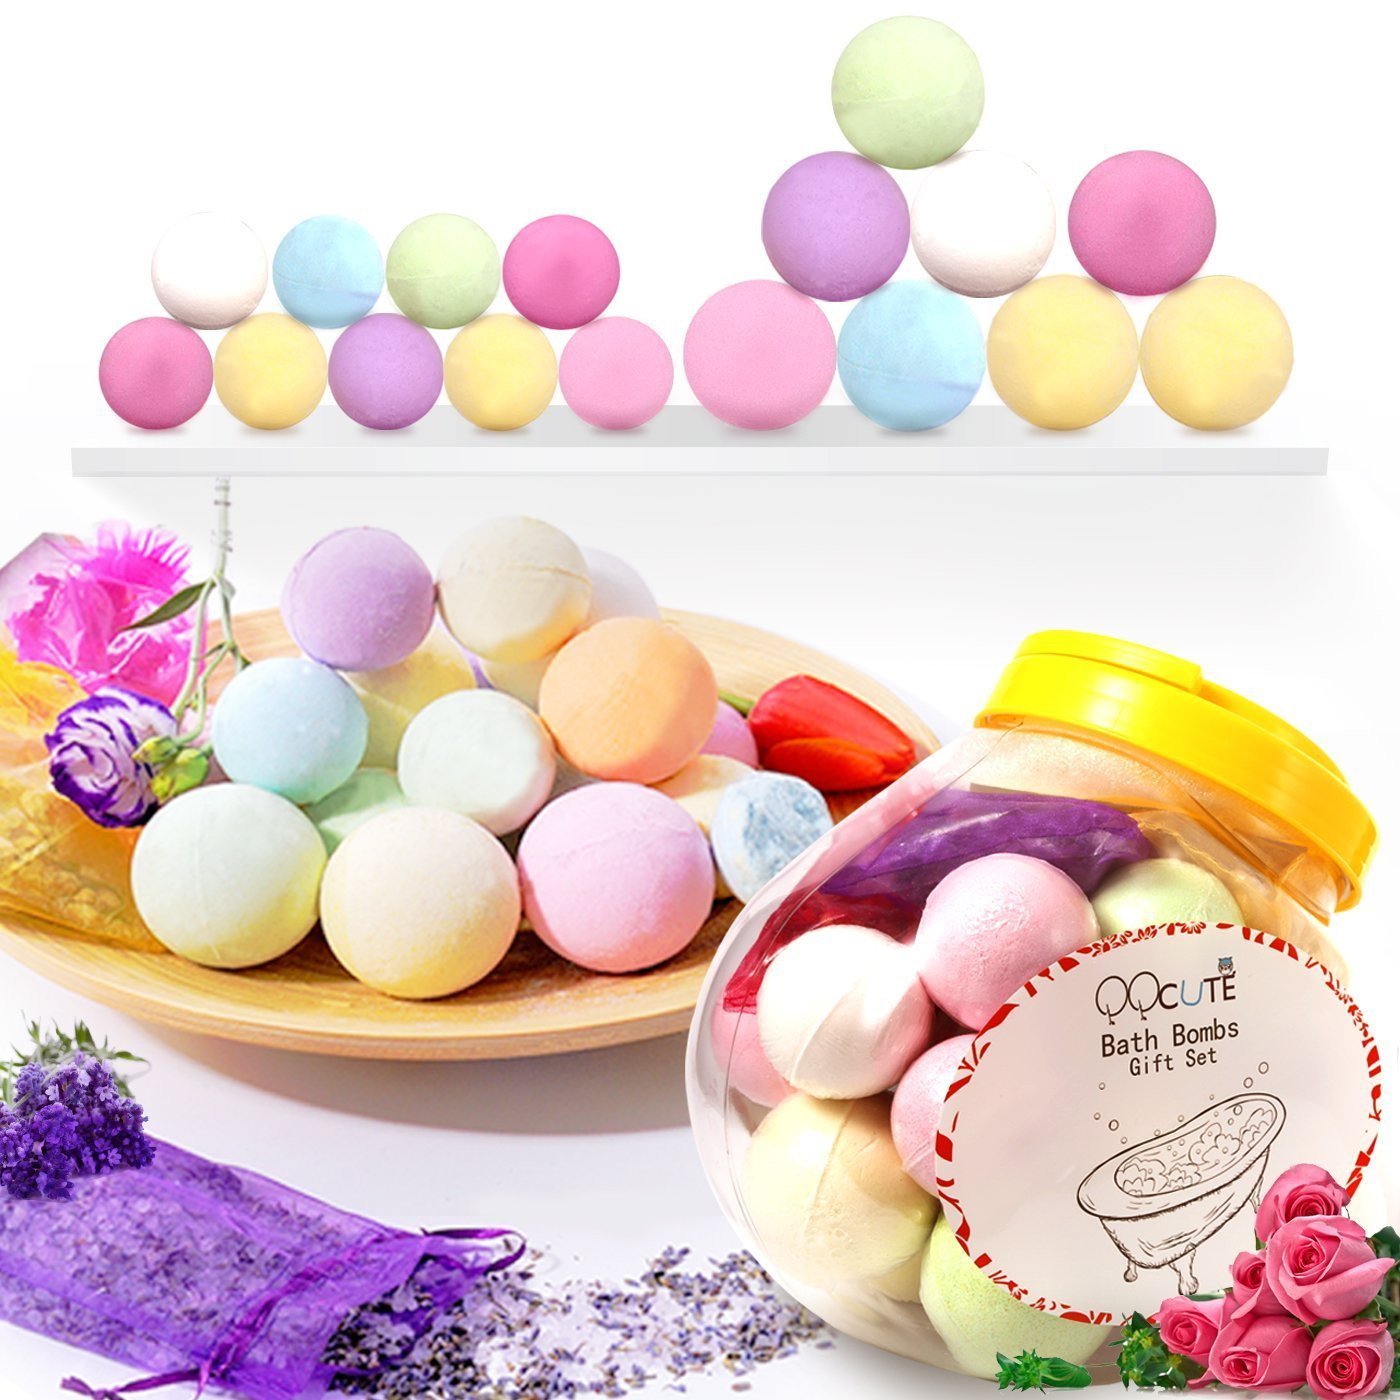 Amazon bath bombs gift set mothers day gifts 18 family spa amazon bath bombs gift set mothers day gifts 18 family spa vegan lush fizzies with natural essential oils3 flower pental bagsmoisturize dry skin izmirmasajfo Image collections